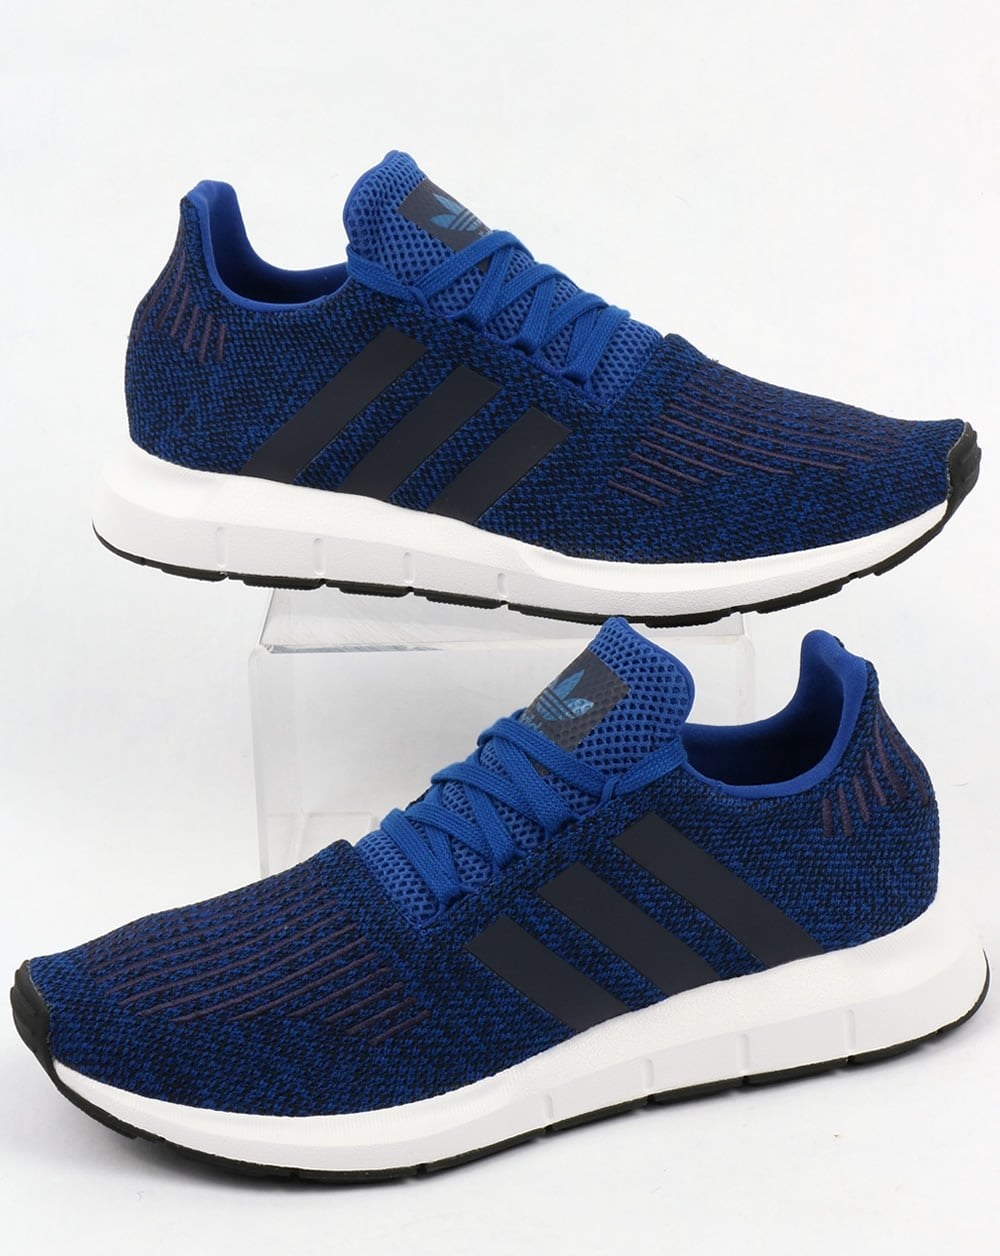 bdac31bee adidas Trainers Adidas Swift Run Trainers Royal Blue Ink